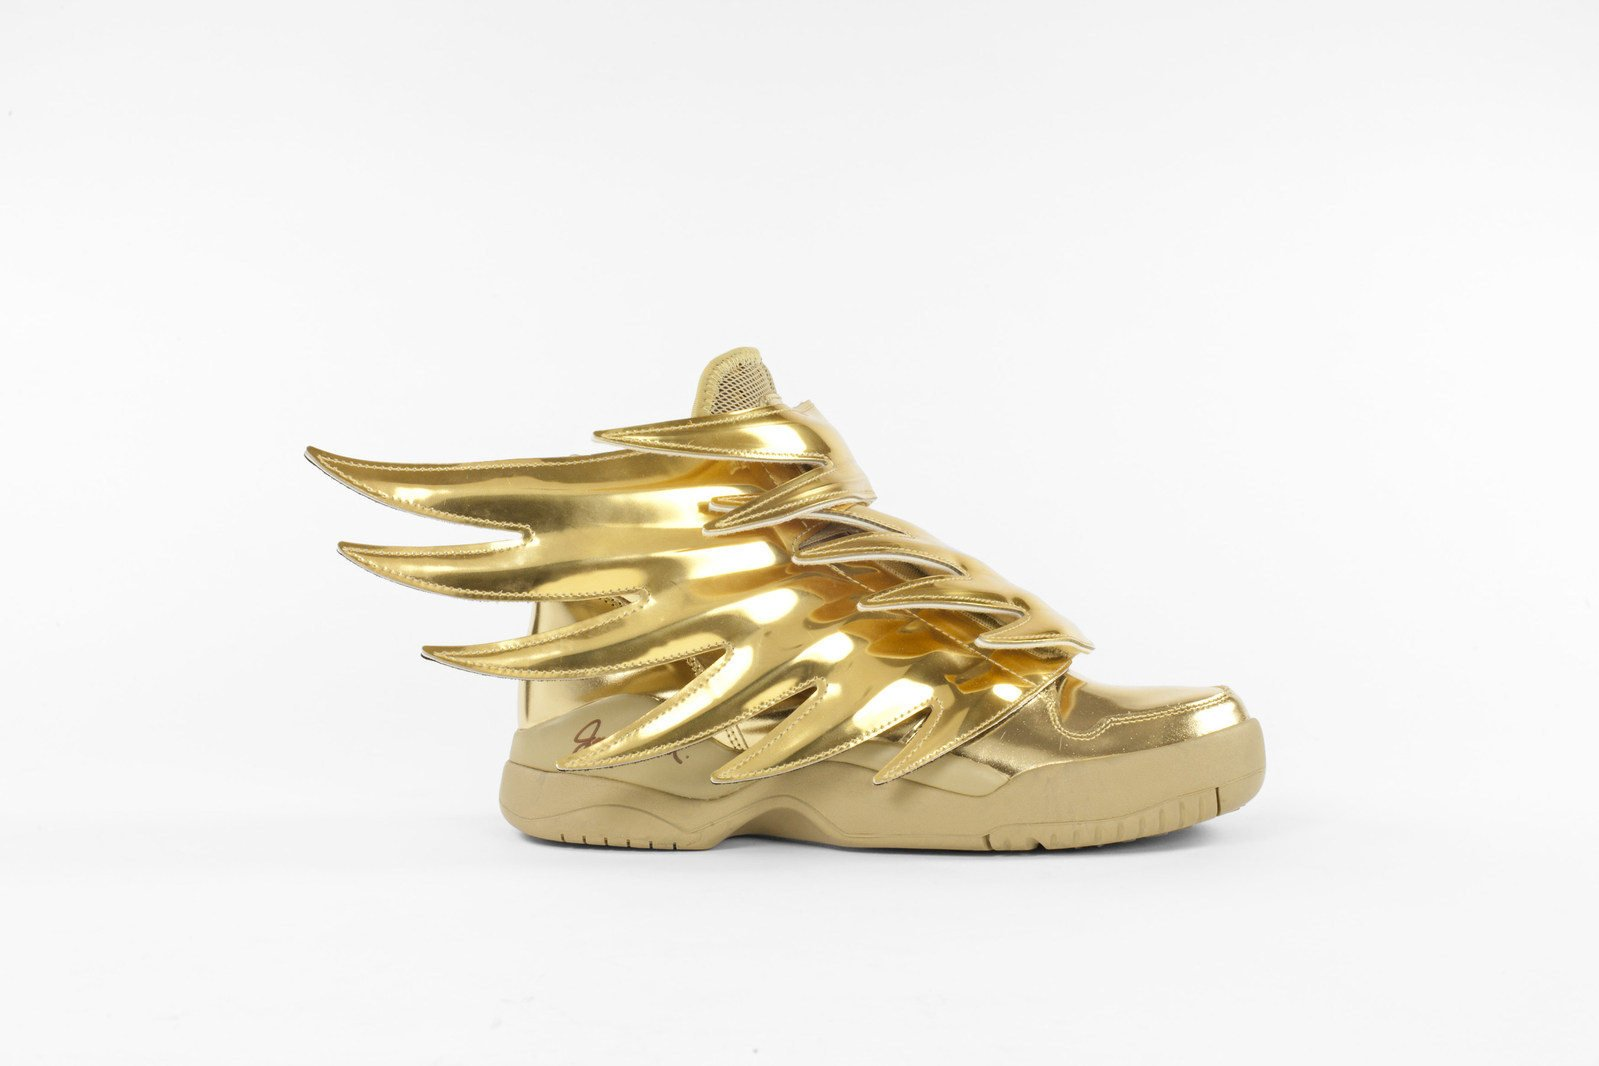 Jeremy Scott x Adidas sneakers that are in one of the museum's exhibitions titled The Gold Standard.